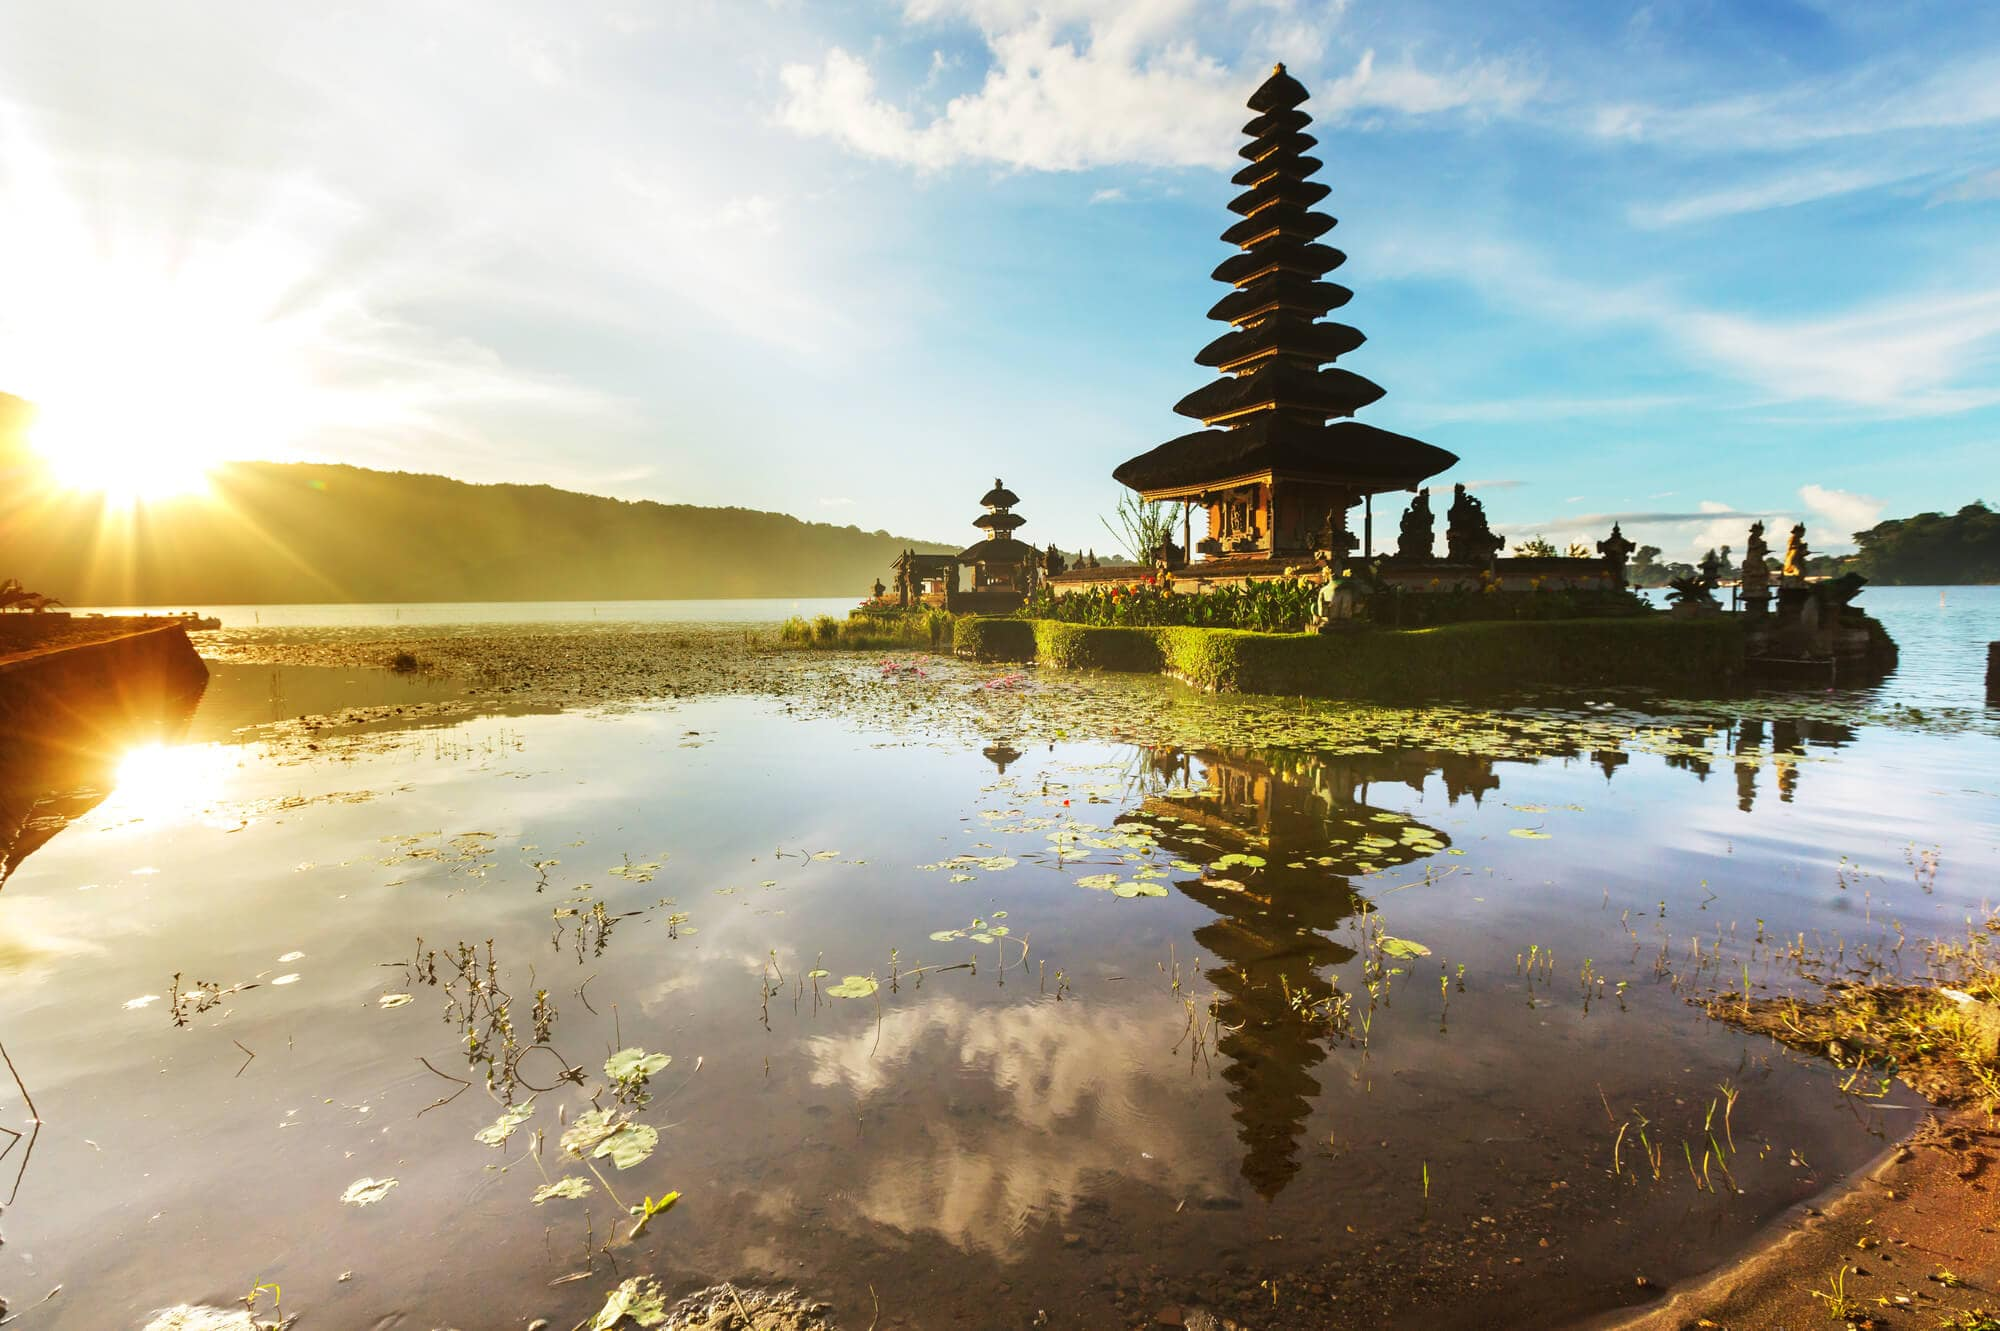 Where to stay in Bali: A complete guide to the different areas on the island - Ulun Danu Beratan Temple in North Bali